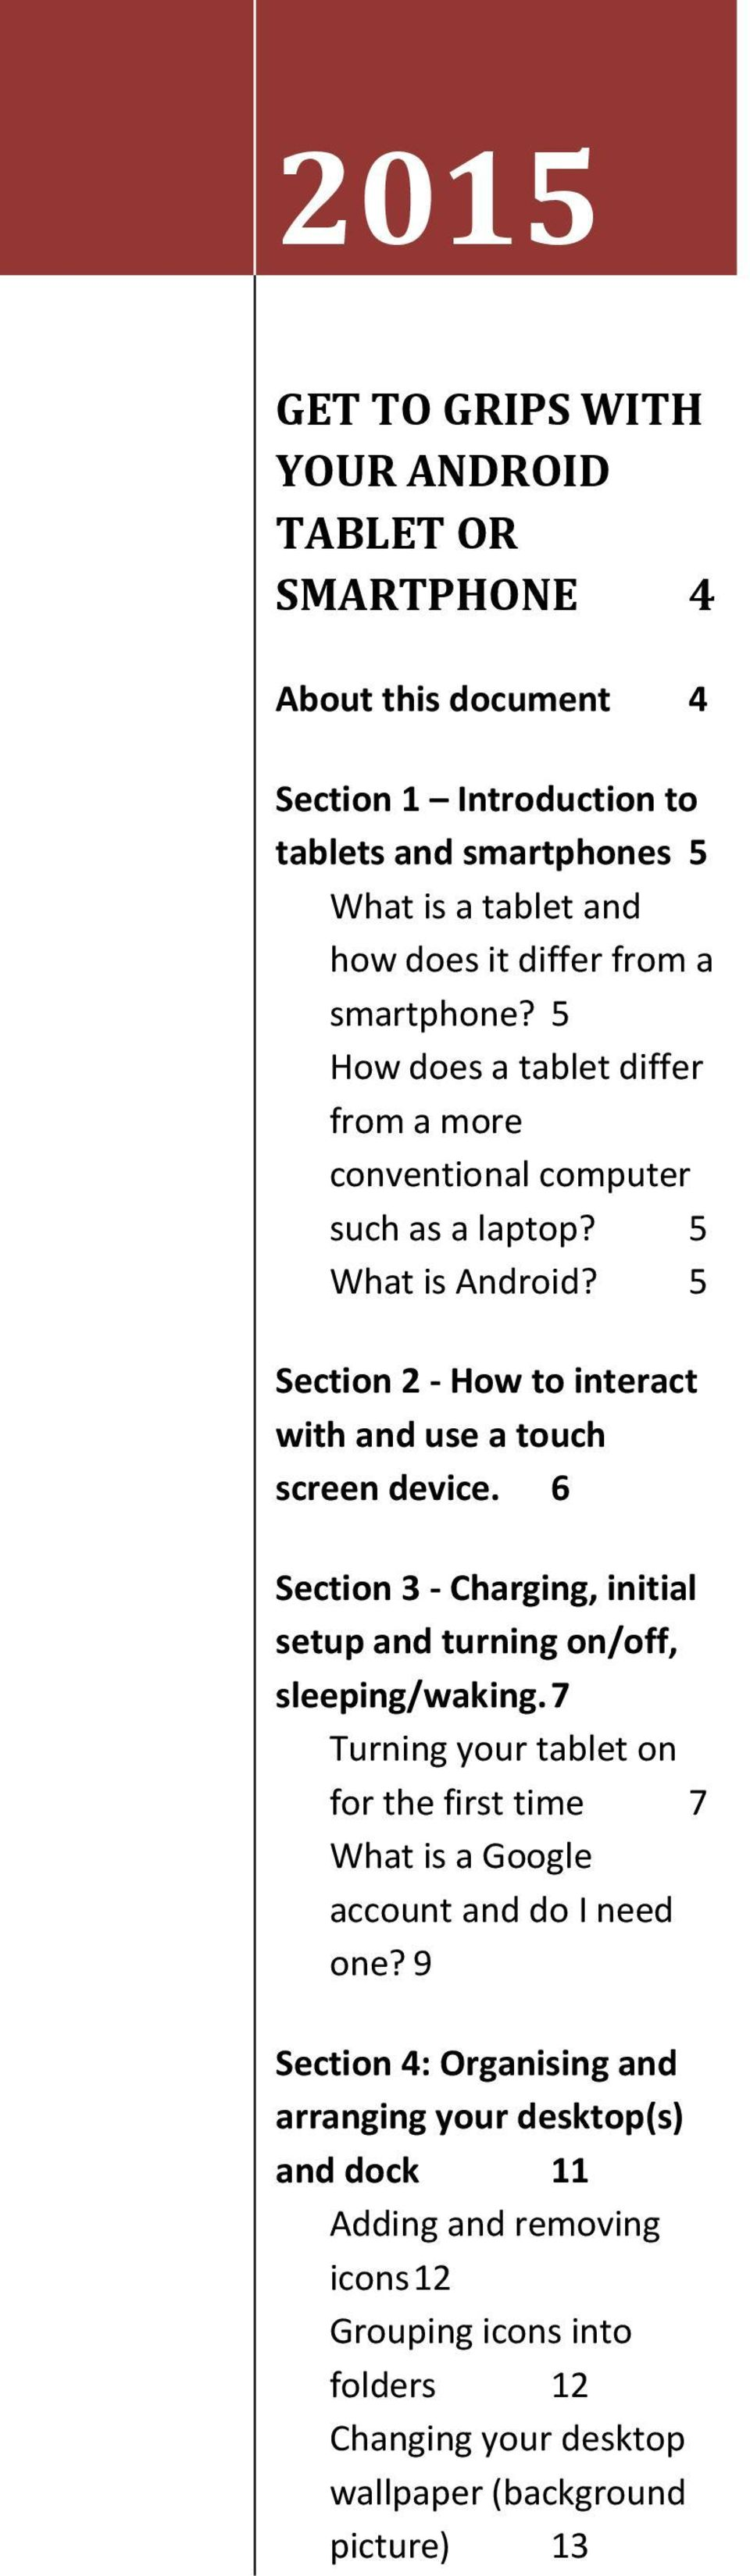 5 Section 2 - How to interact with and use a touch screen device. 6 Section 3 - Charging, initial setup and turning on/off, sleeping/waking.